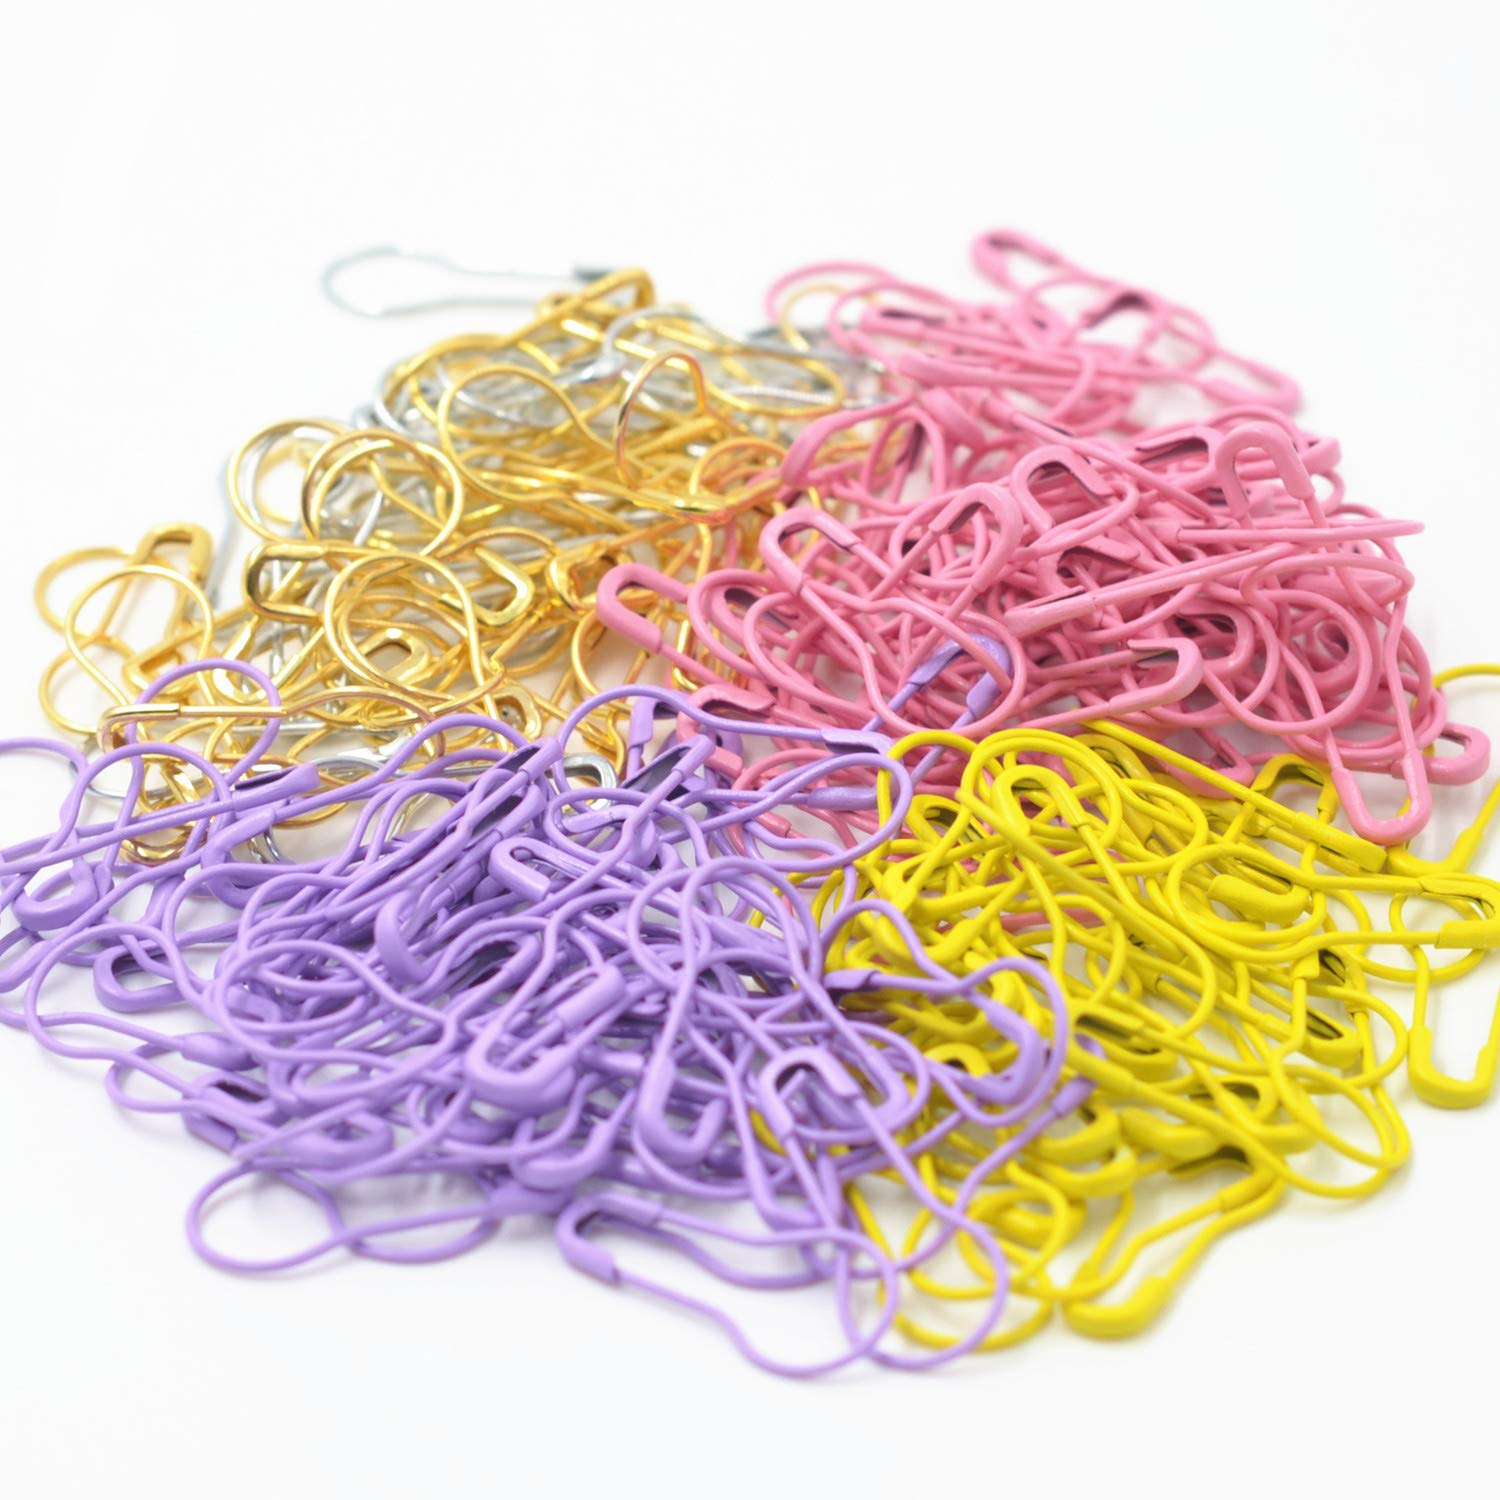 750 Pieces 15 Colors Assorted Bulb Safety Pins Pear Shaped Pins Calabash Pin Knitting Stitch Markers Sewing Making with Storage Box